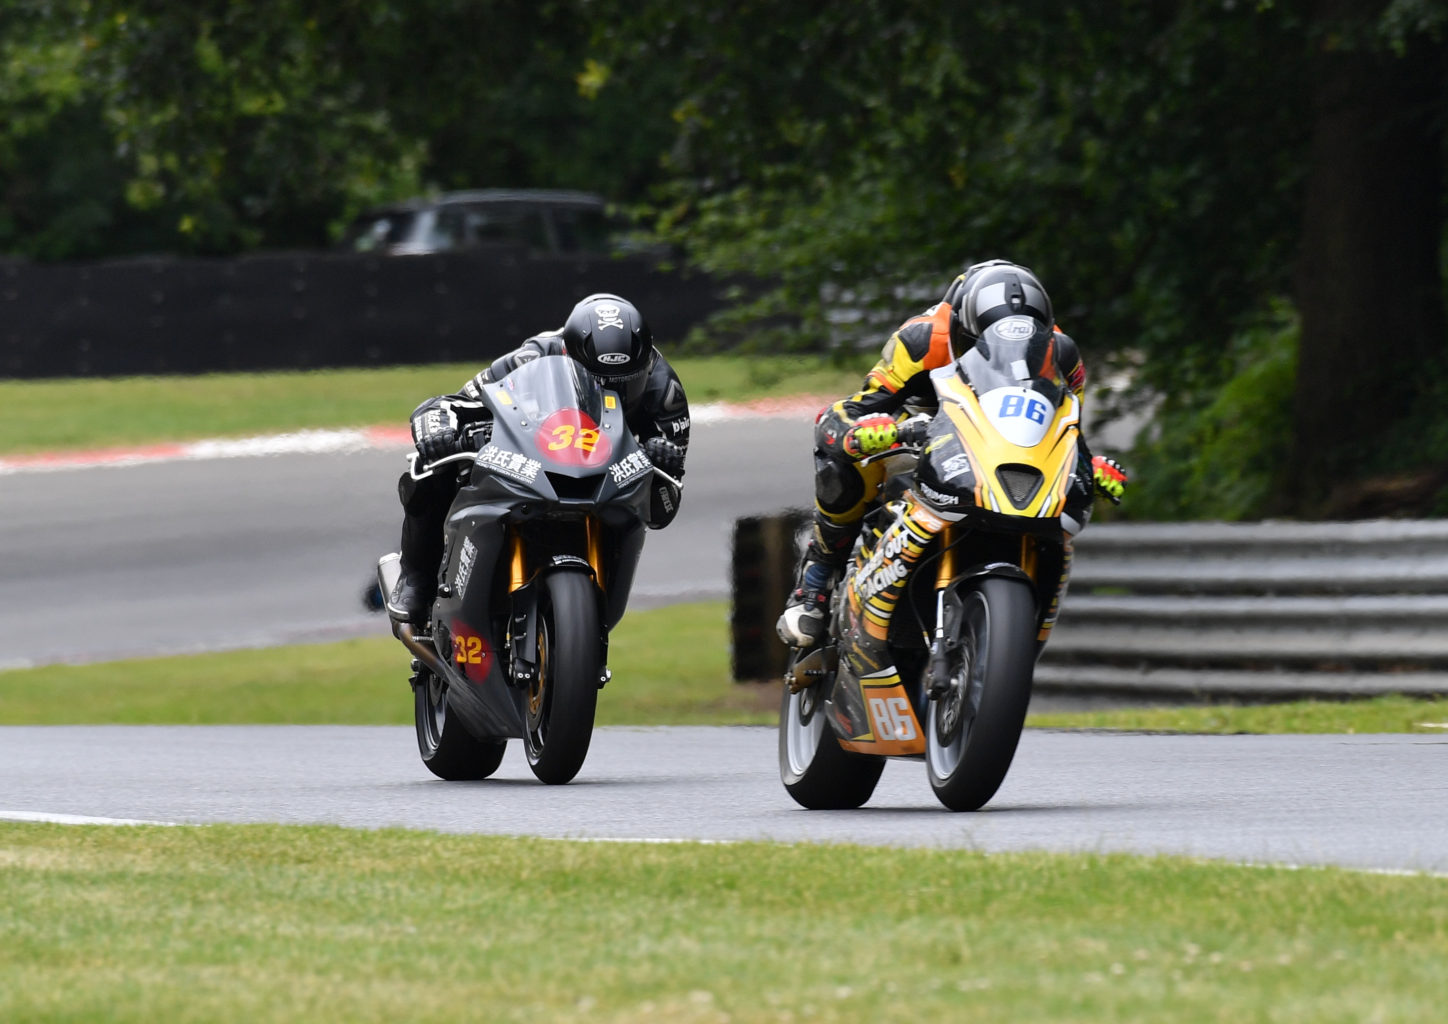 Kelman and Piper dicing for MRO 600 honours...